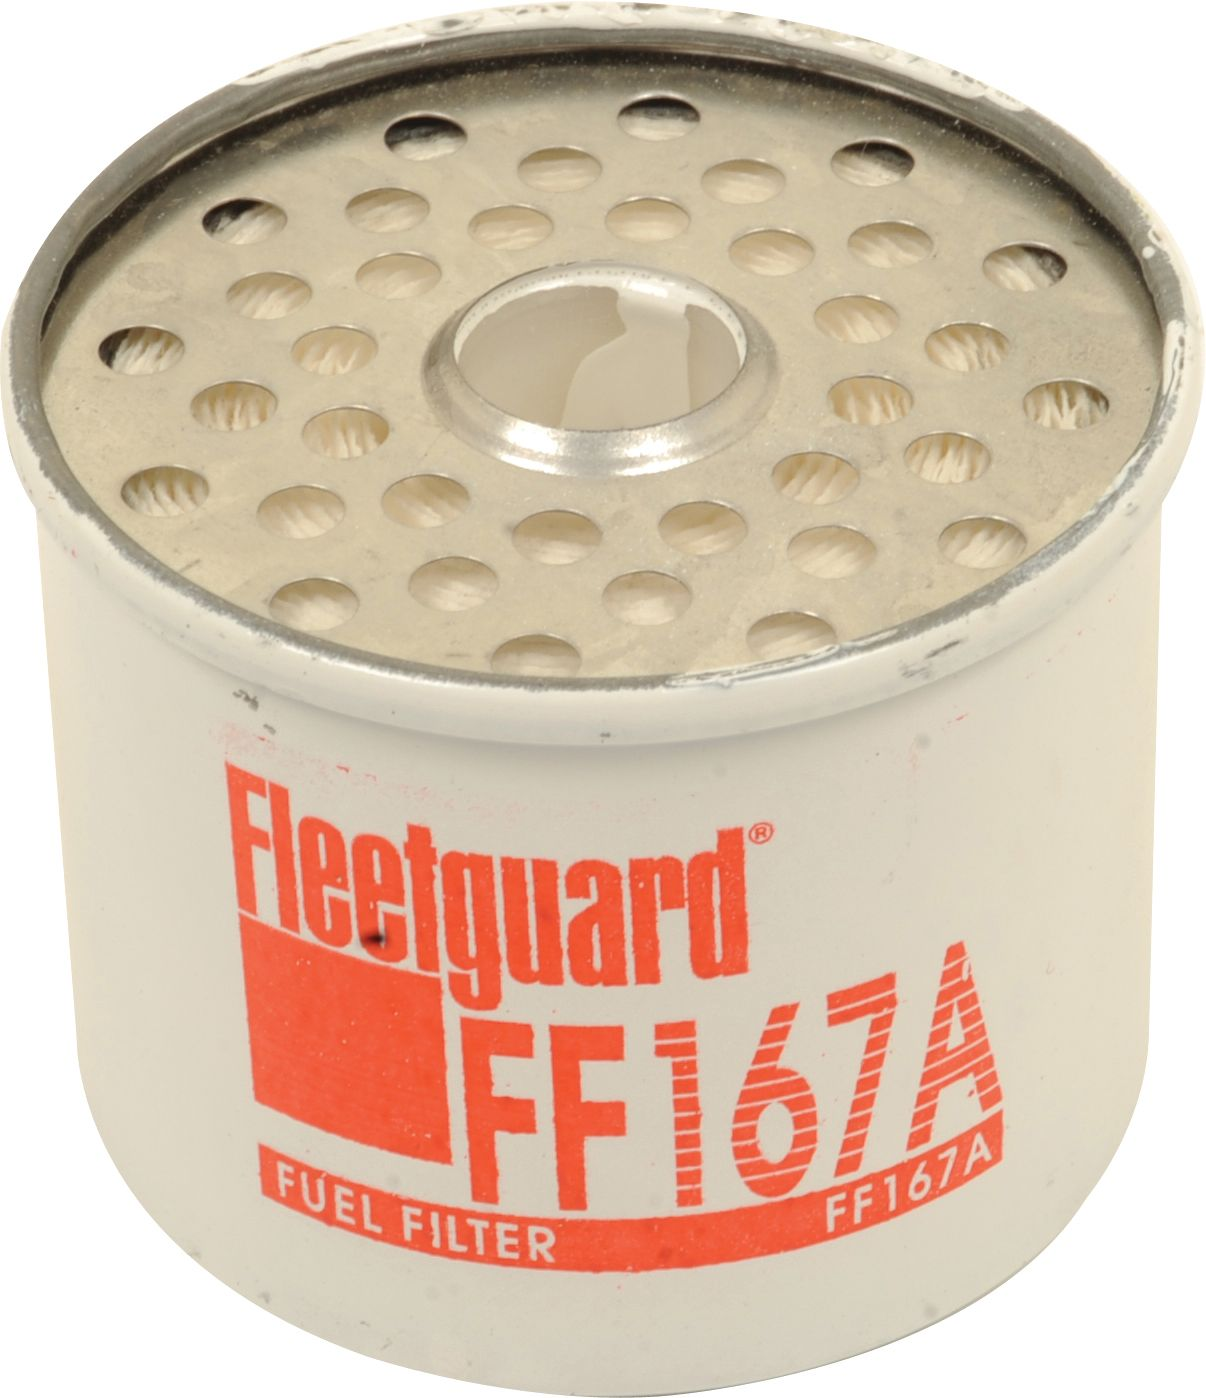 RENAULT FUEL FILTER FF167A 109024